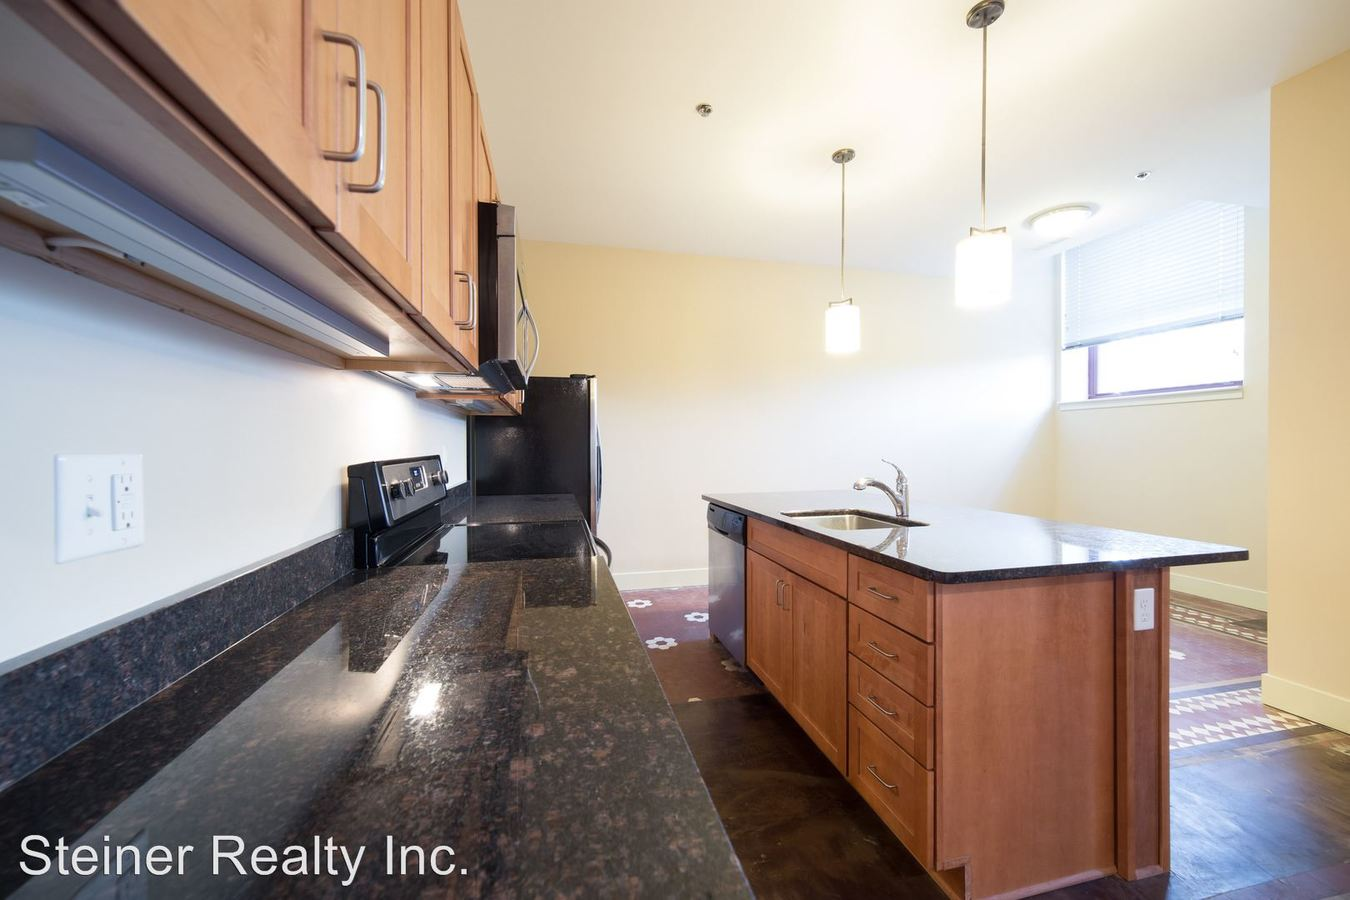 2 Bedrooms 1 Bathroom Apartment for rent at 5th Ave School Lofts in Pittsburgh, PA